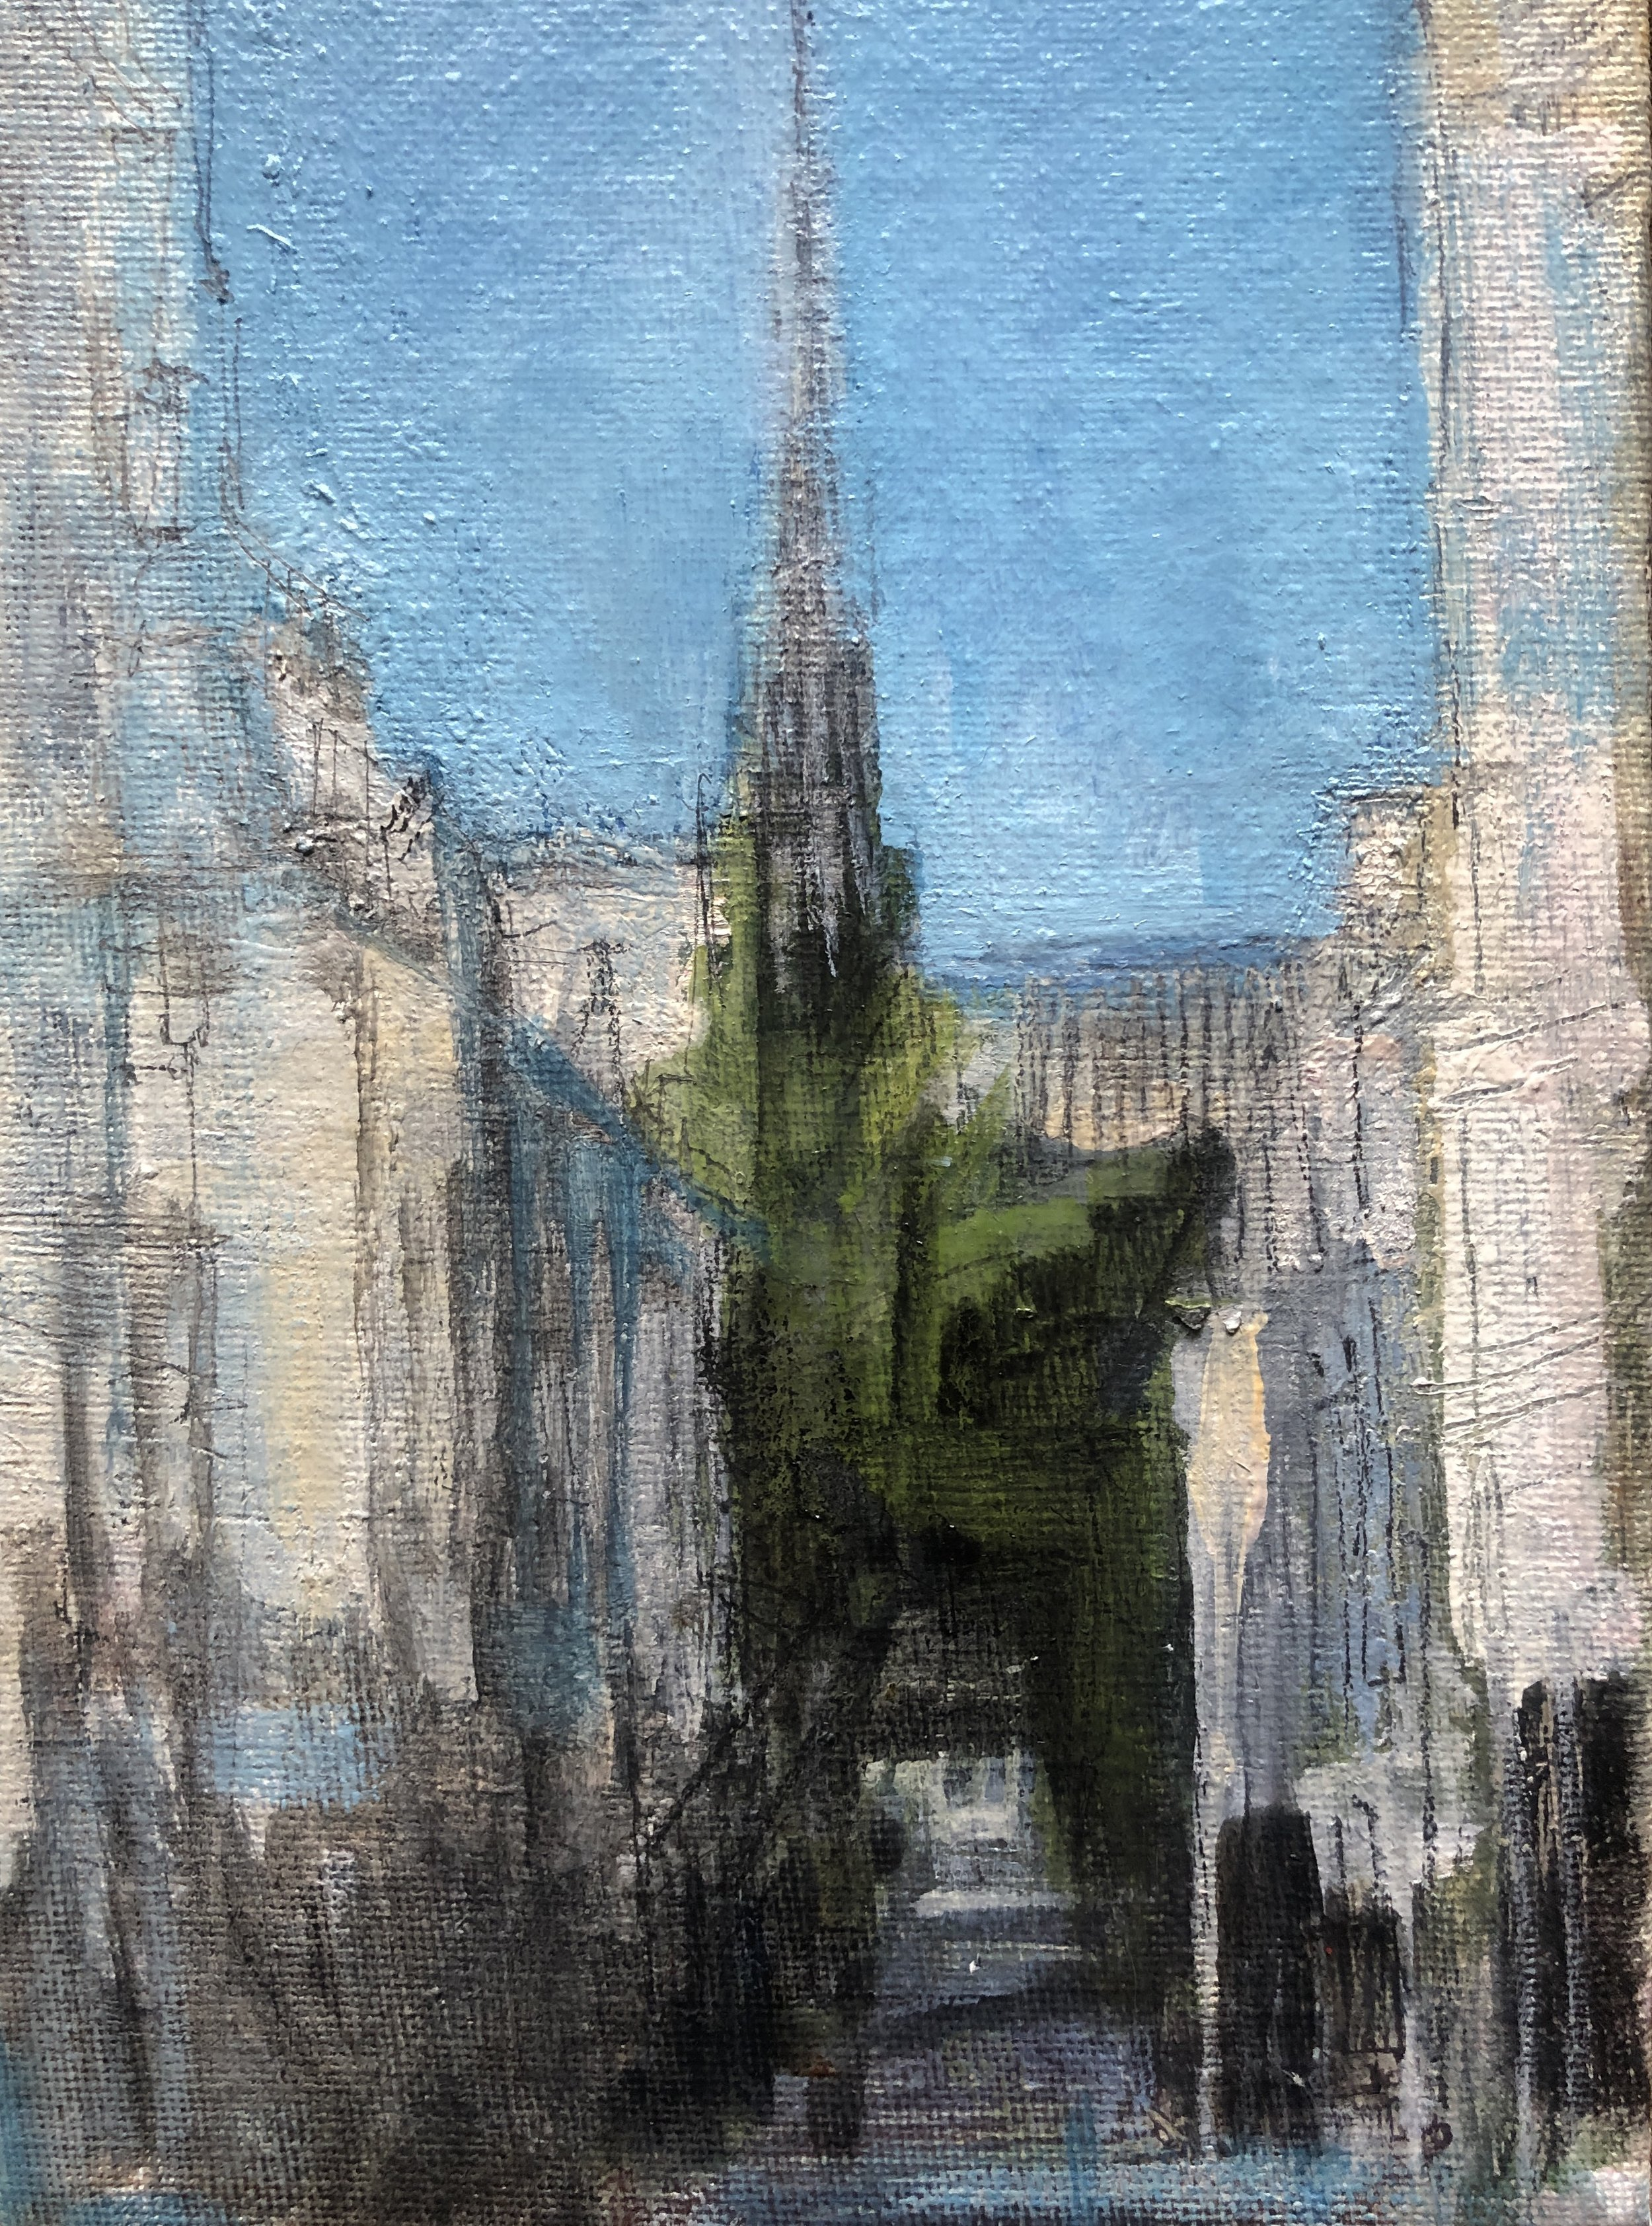 """This is a painting I have been working on from my French series of my June 2018 visit. It is of the spire of Notre-Dame Cathedral. This painting takes on a deep and profound meaning now that the spire has fallen from the April 15 fire. Oil on canvas, 5x7."""" Work in progress."""